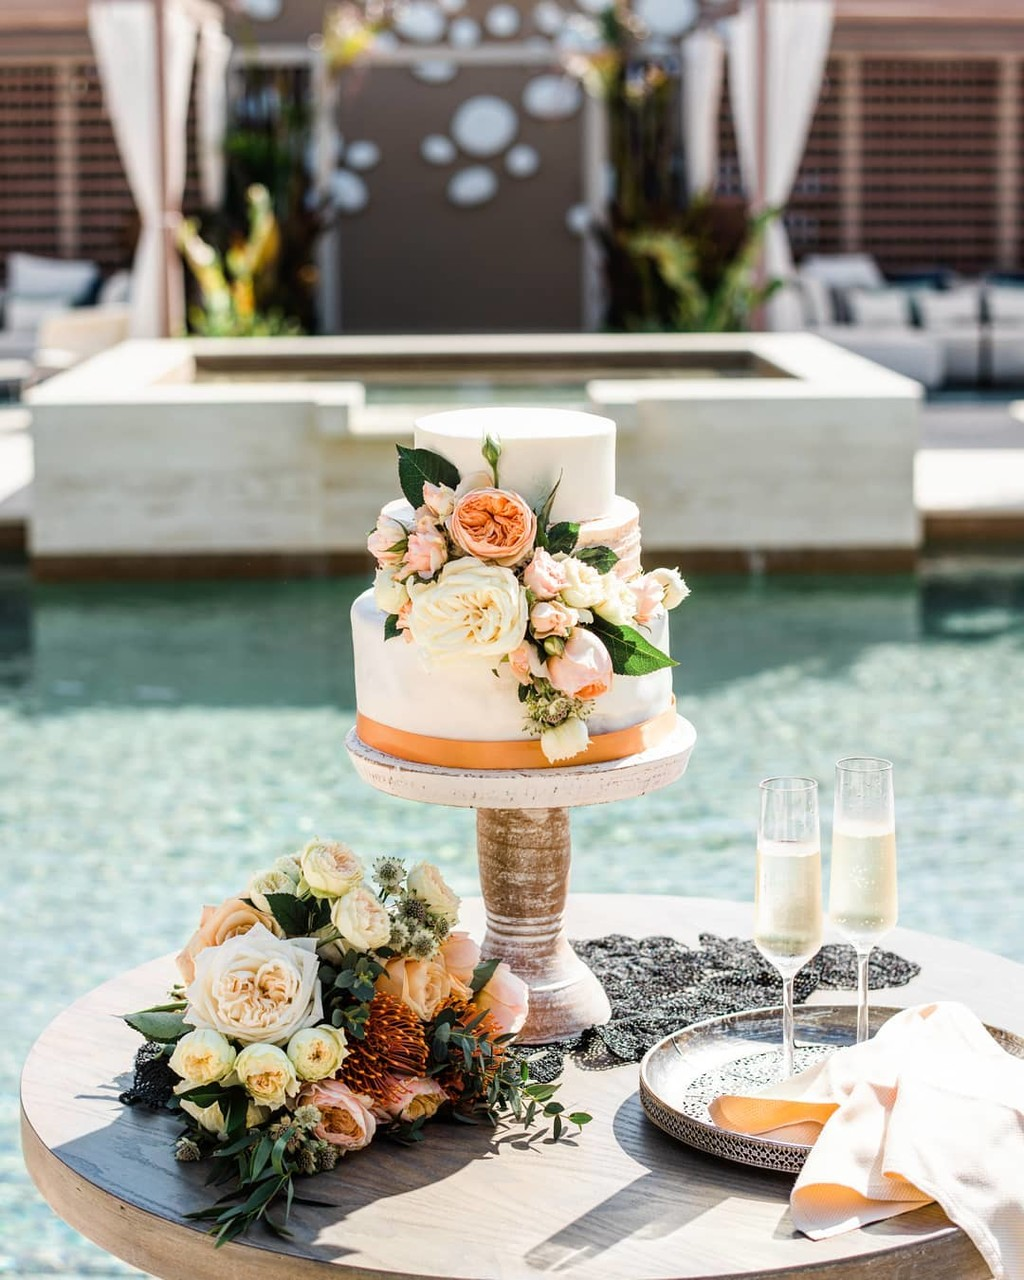 CELEBRATING the sweetness of life at @montageloscabos.